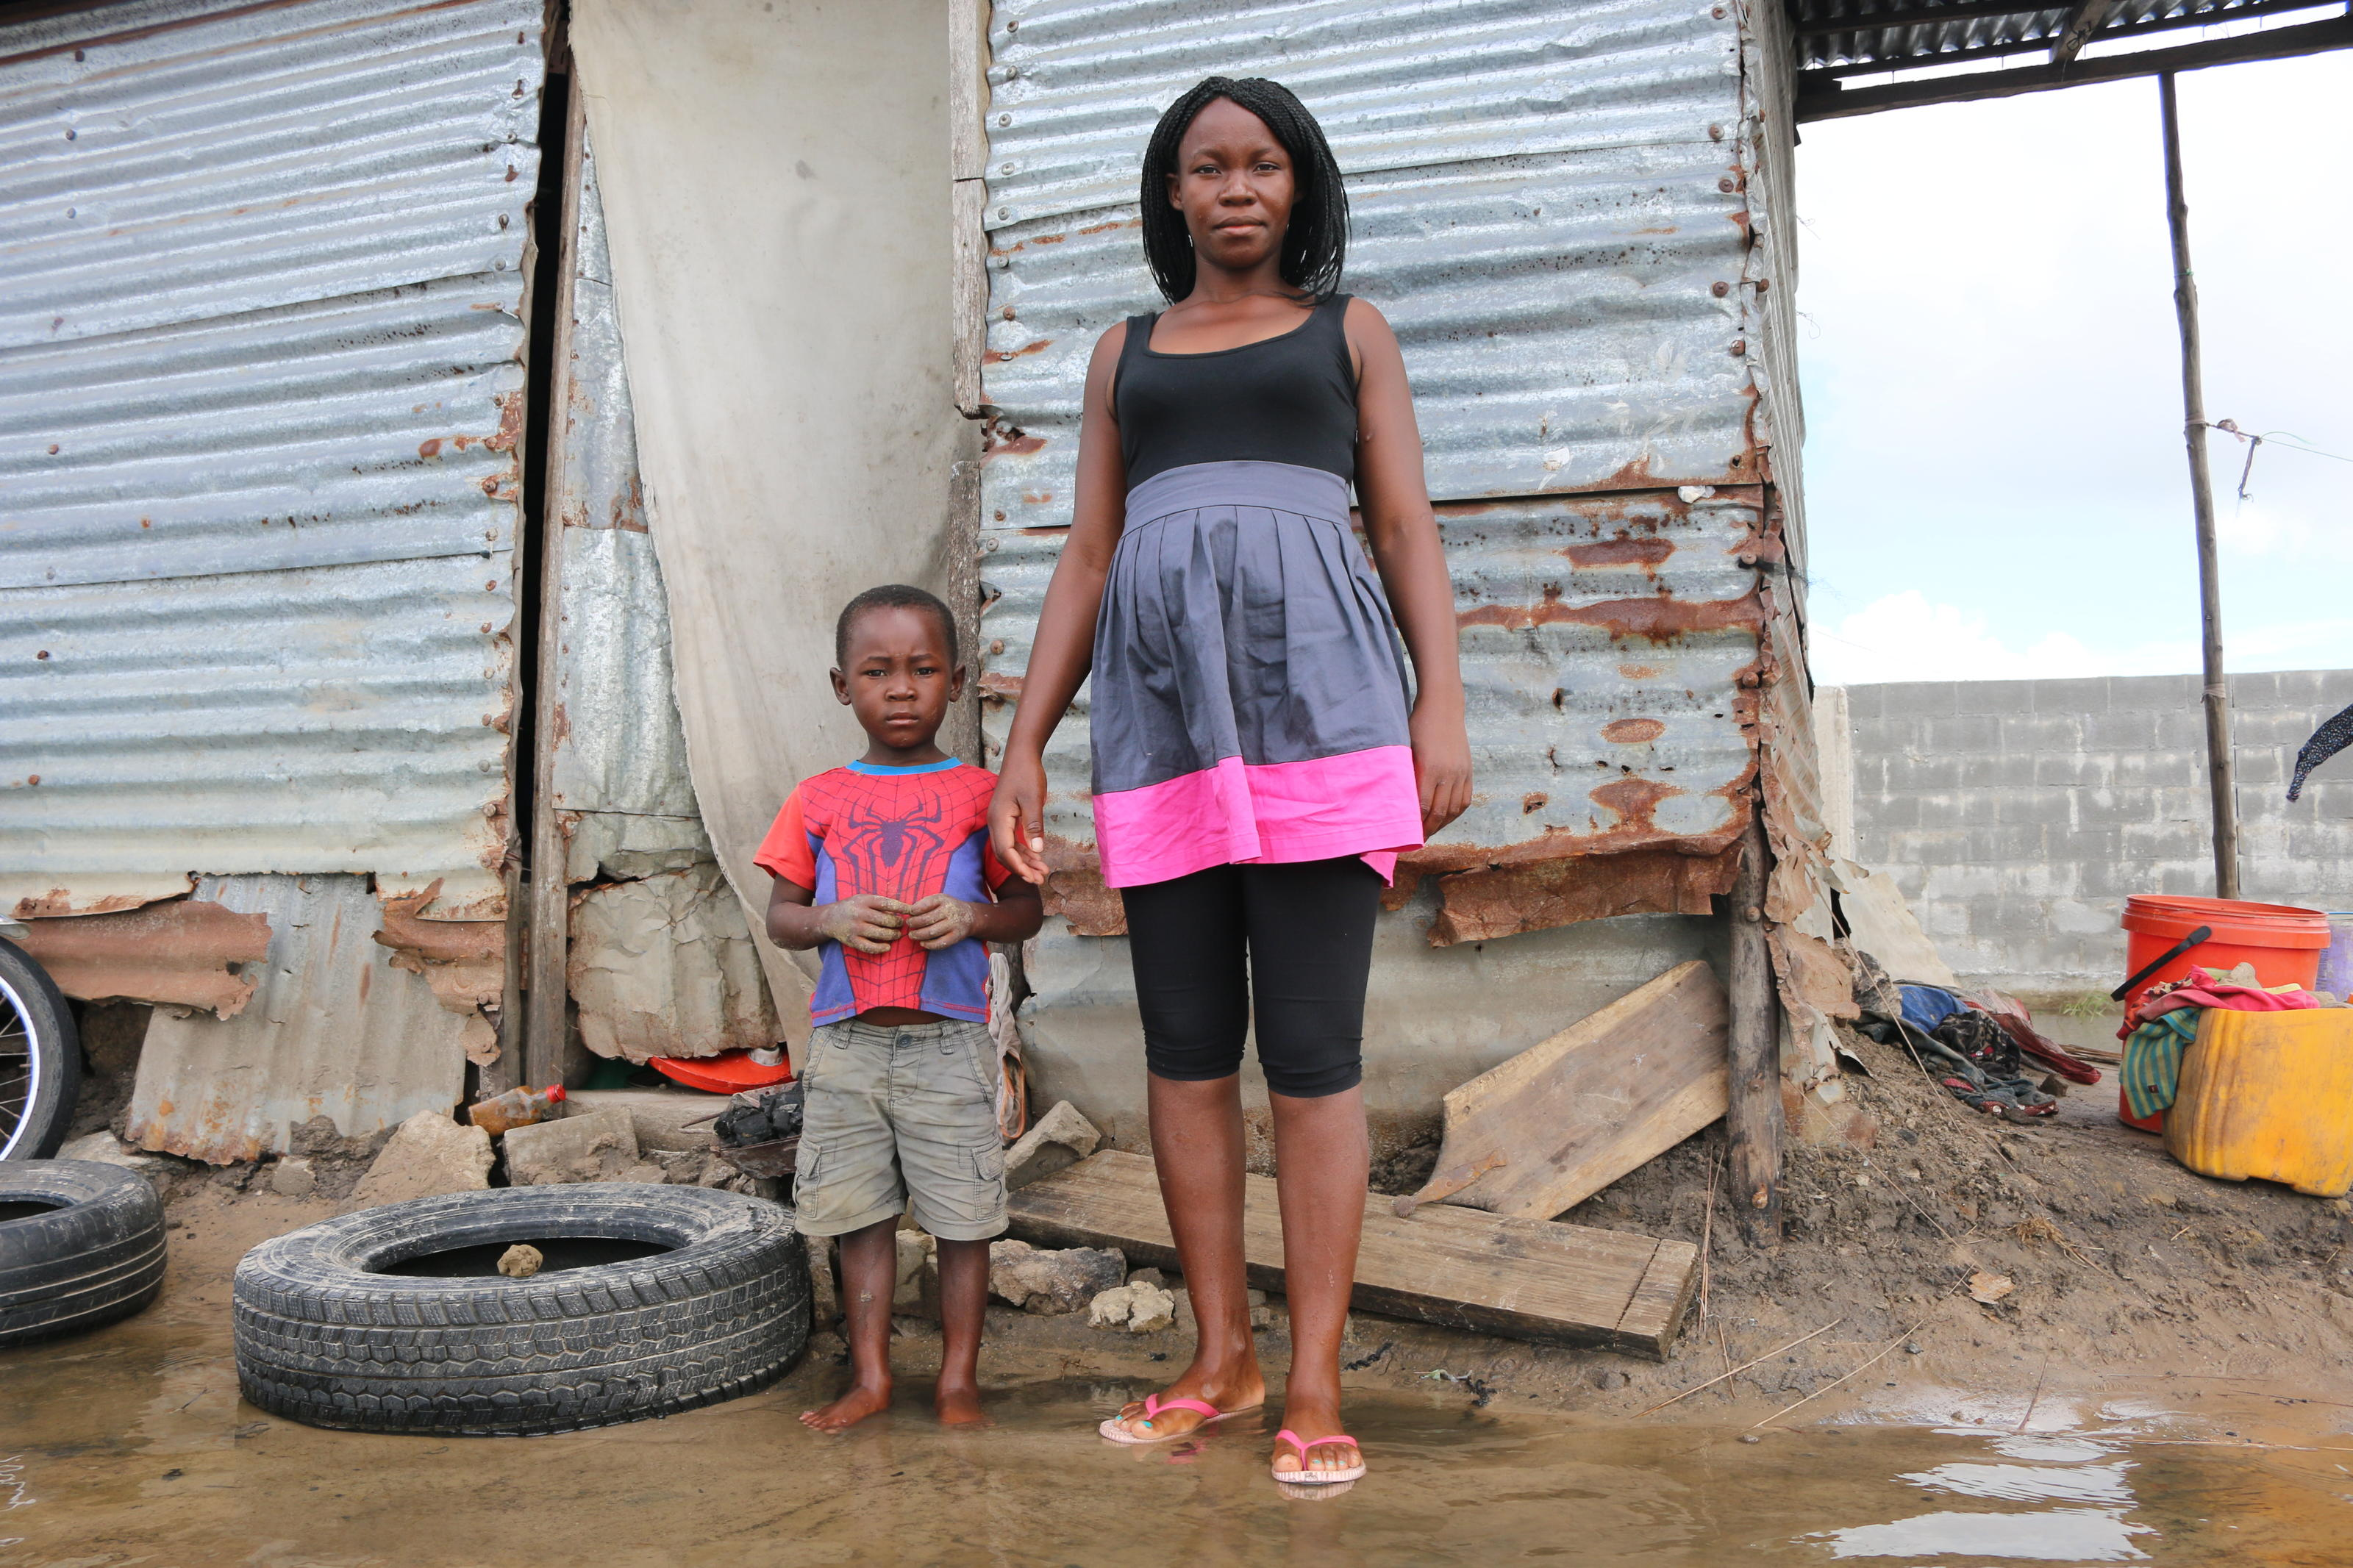 Zaida Eduardo, 24, stands in front of her mother's house. The house is surrounded by water and unfit to live in ,in Quelimane, Mozambique. March 2019.